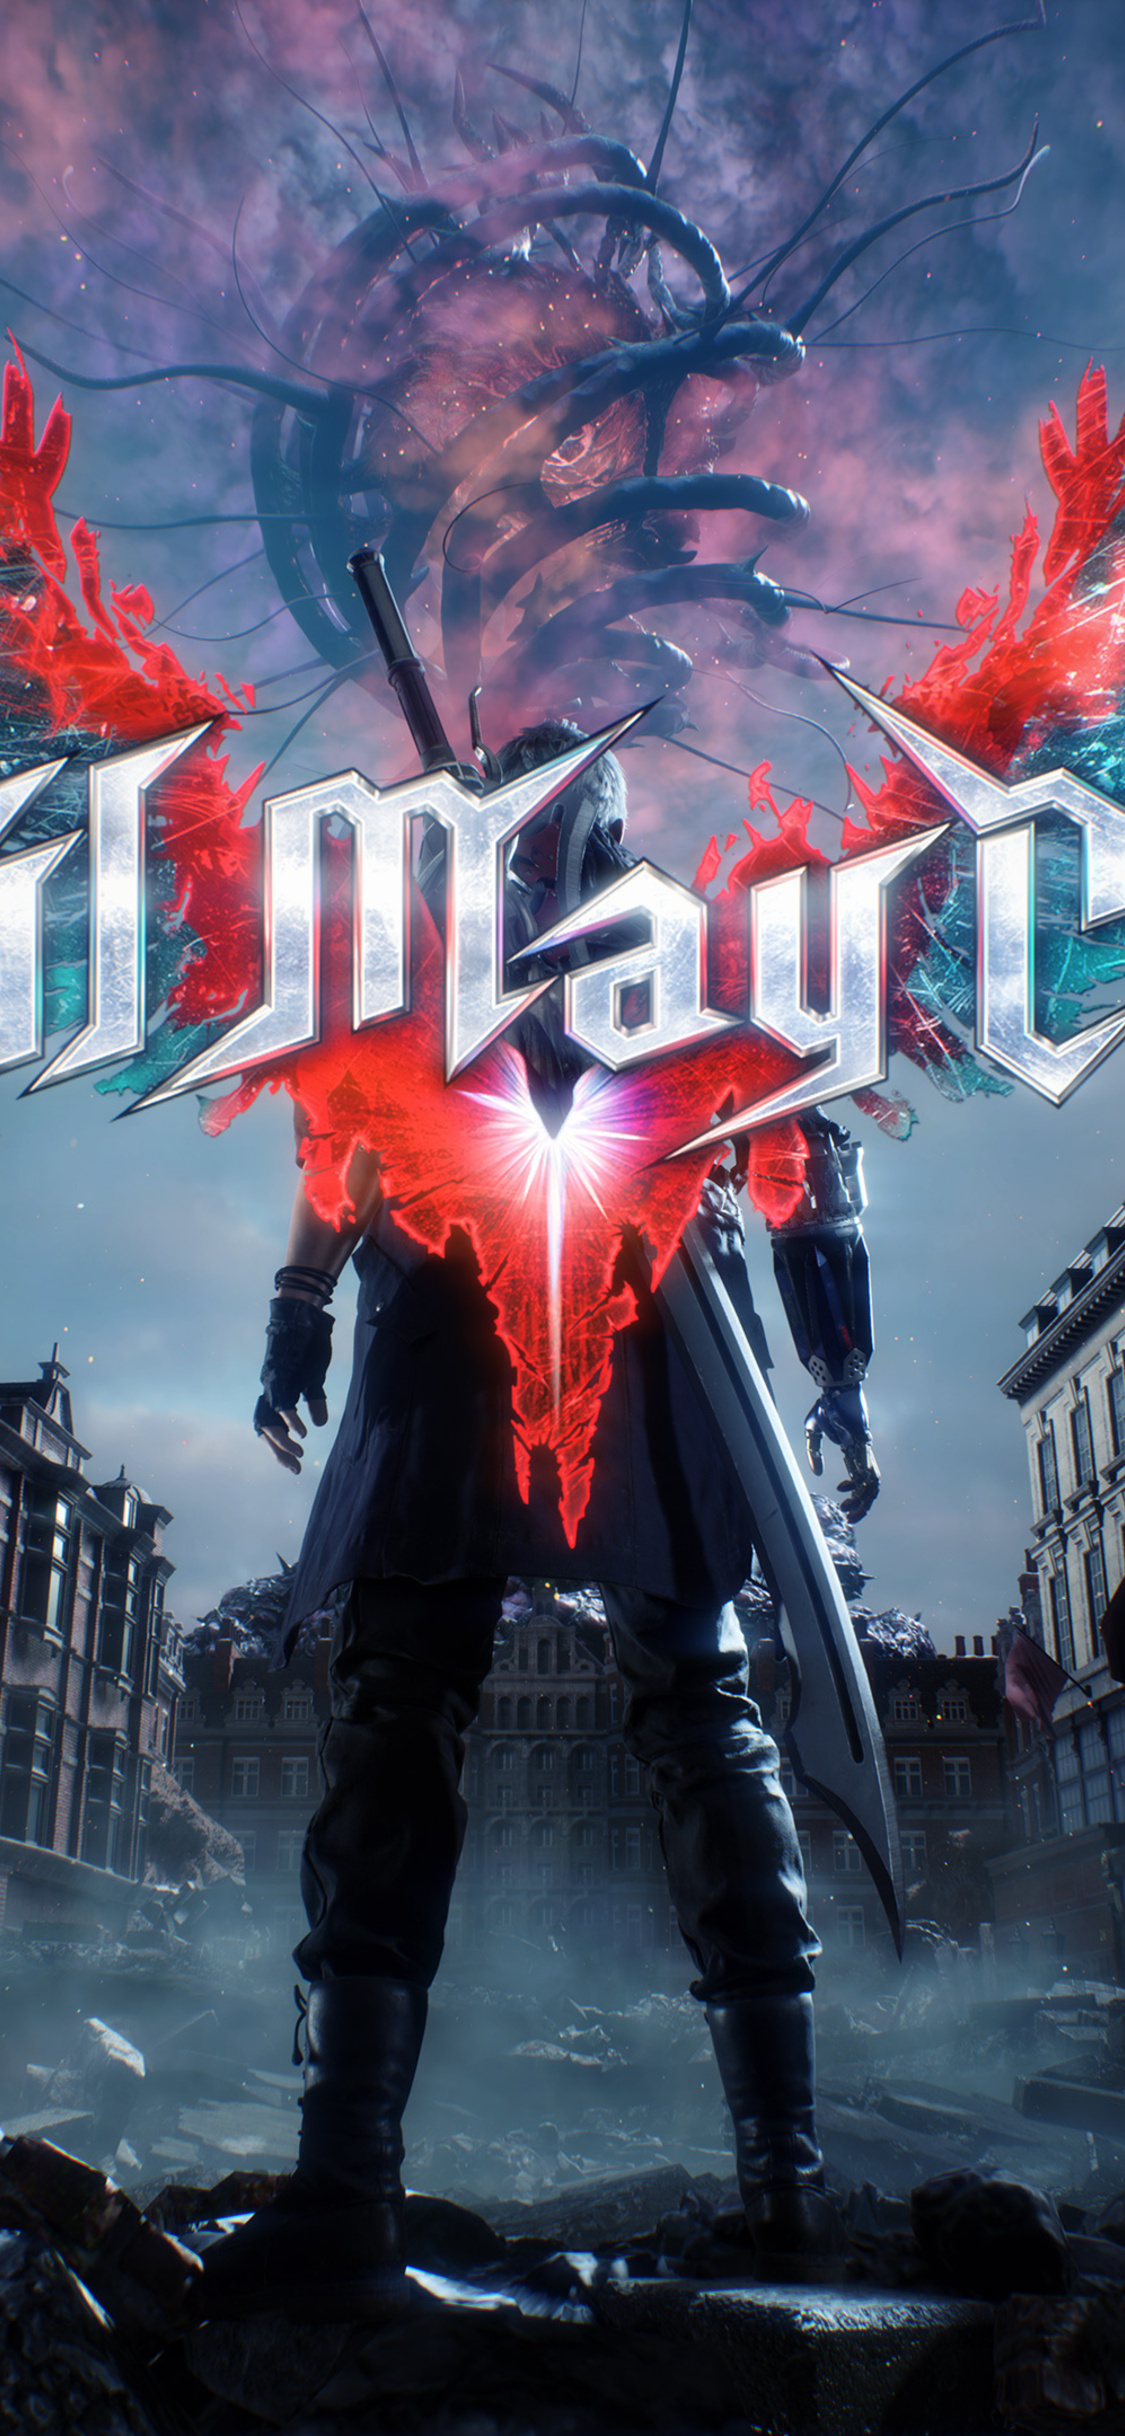 1125x2436 Devil May Cry 5 Ultra Hd Iphone Xsiphone 10